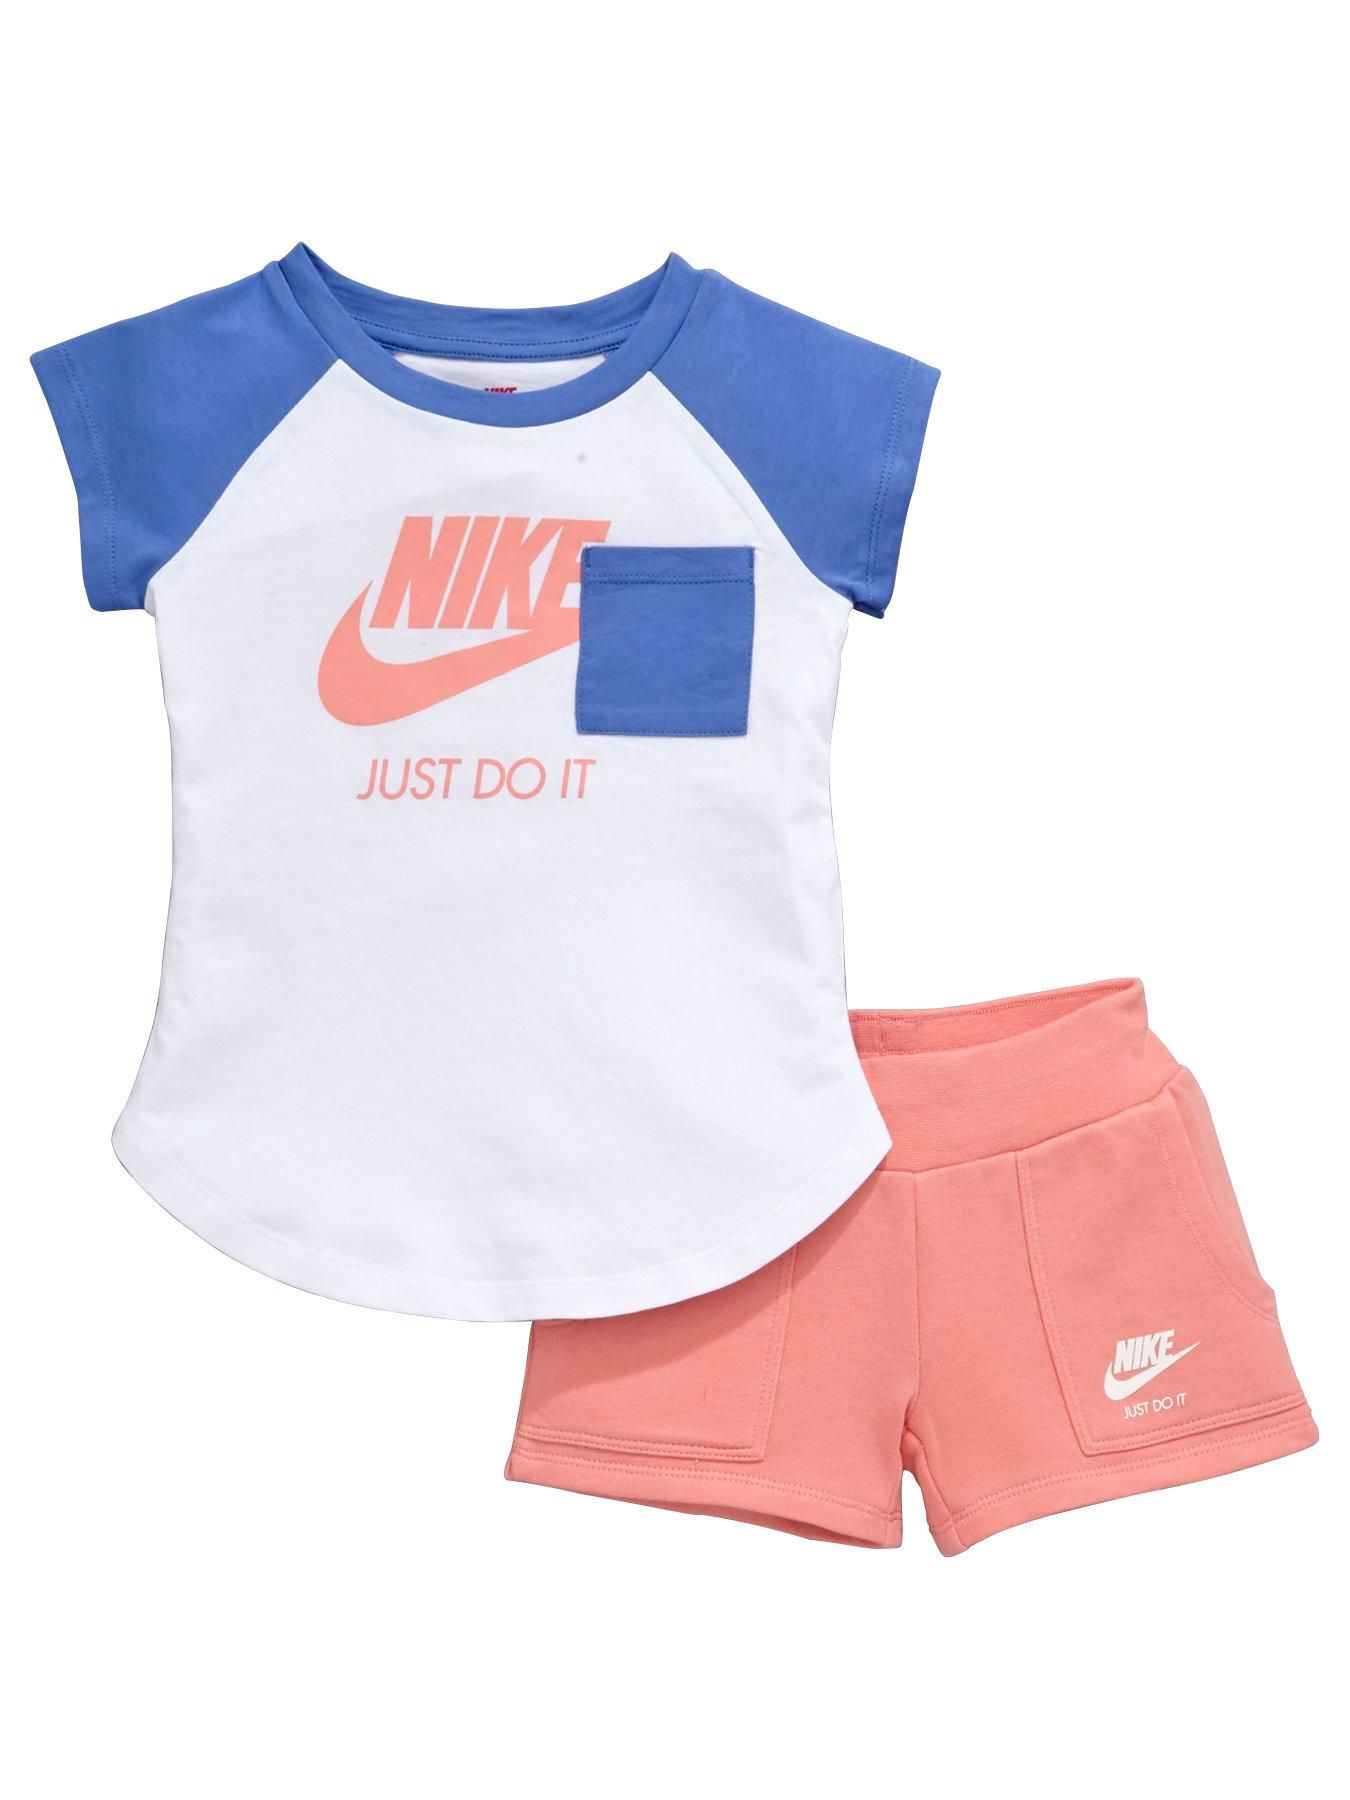 Nike Baby Girl Clothes Classy Washing Instructions Machine Washable100% Cotton  Littlewood Review